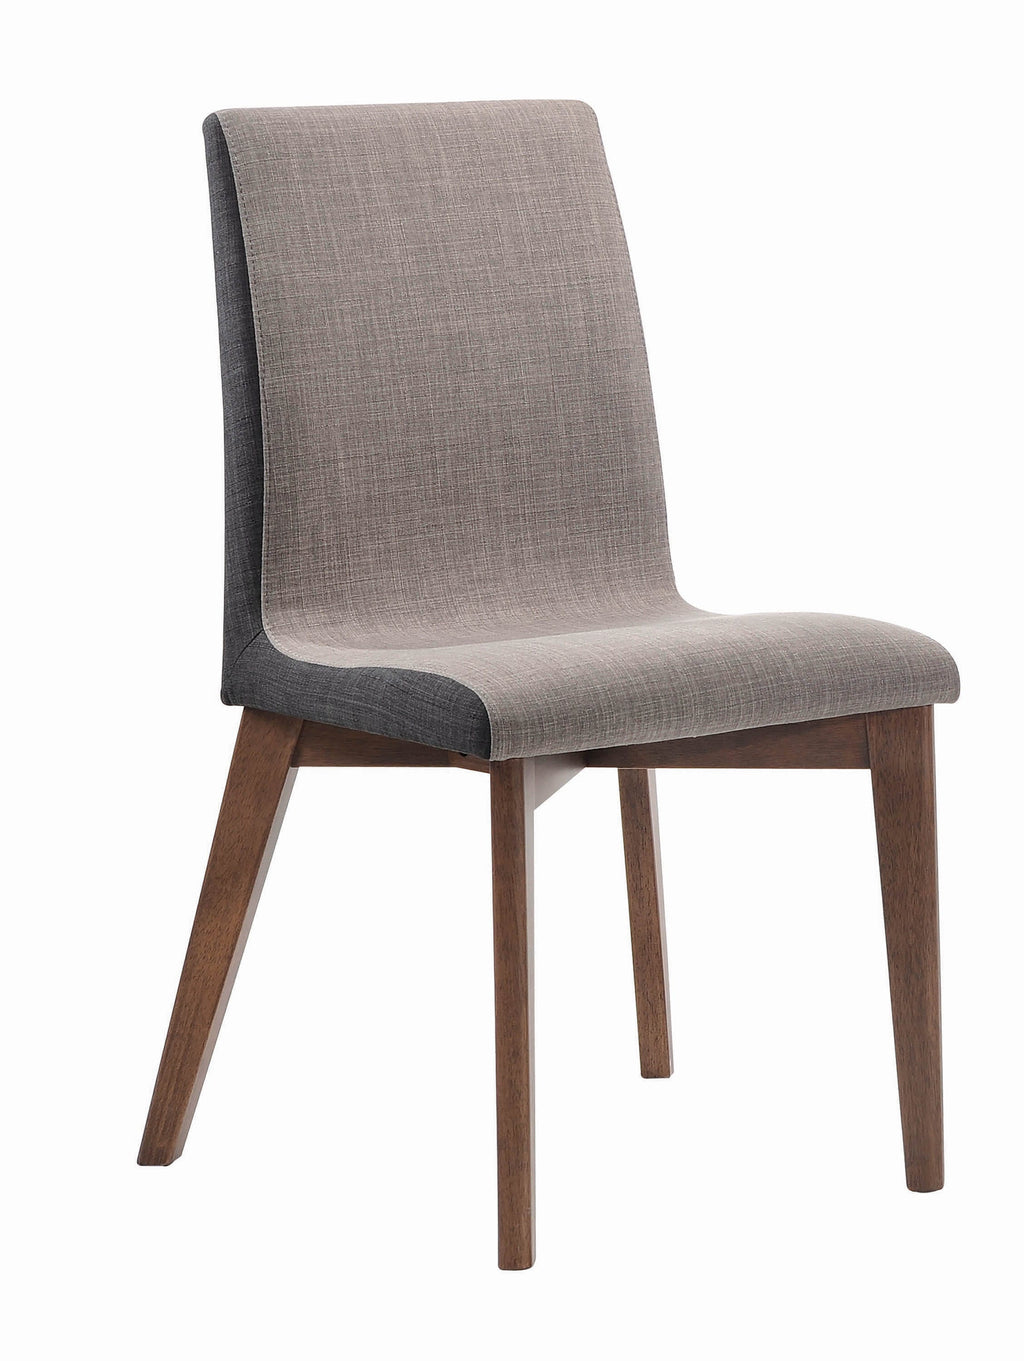 Redbridge Mid-Century Modern Natural Walnut Dining Chair - What A Room Furniture